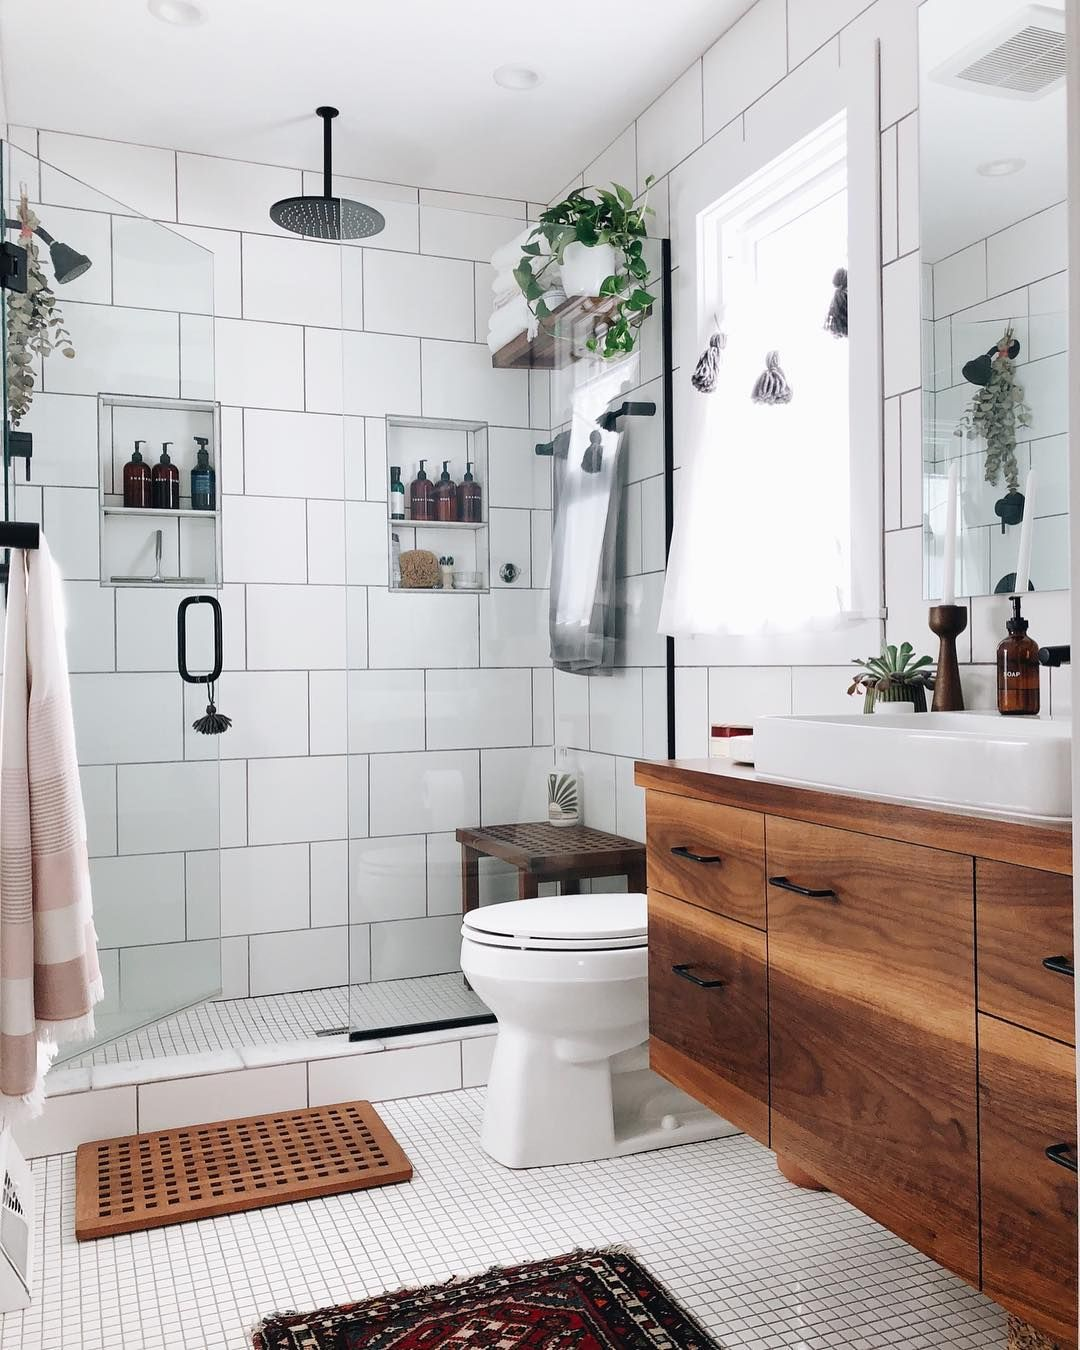 Beautiful And Inspiring Bathroom Decor Ideas From Instagram